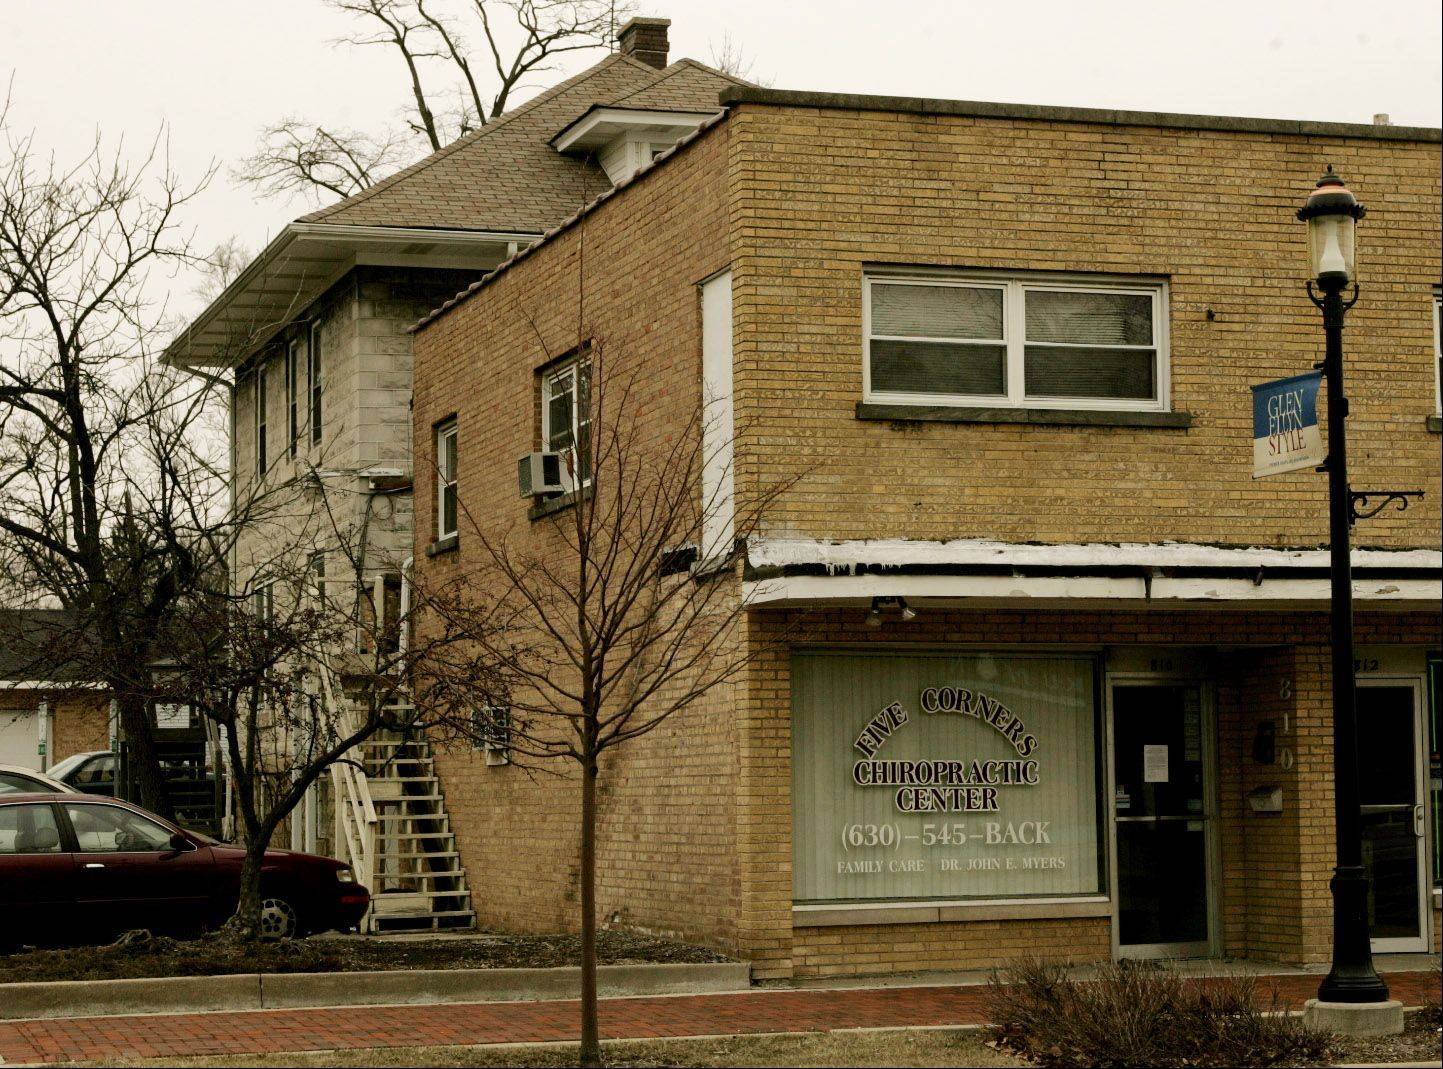 Glen Ellyn officials say they plan to keep a commercial storefront at 810 N. Main St., but demolish an attached century-old house.